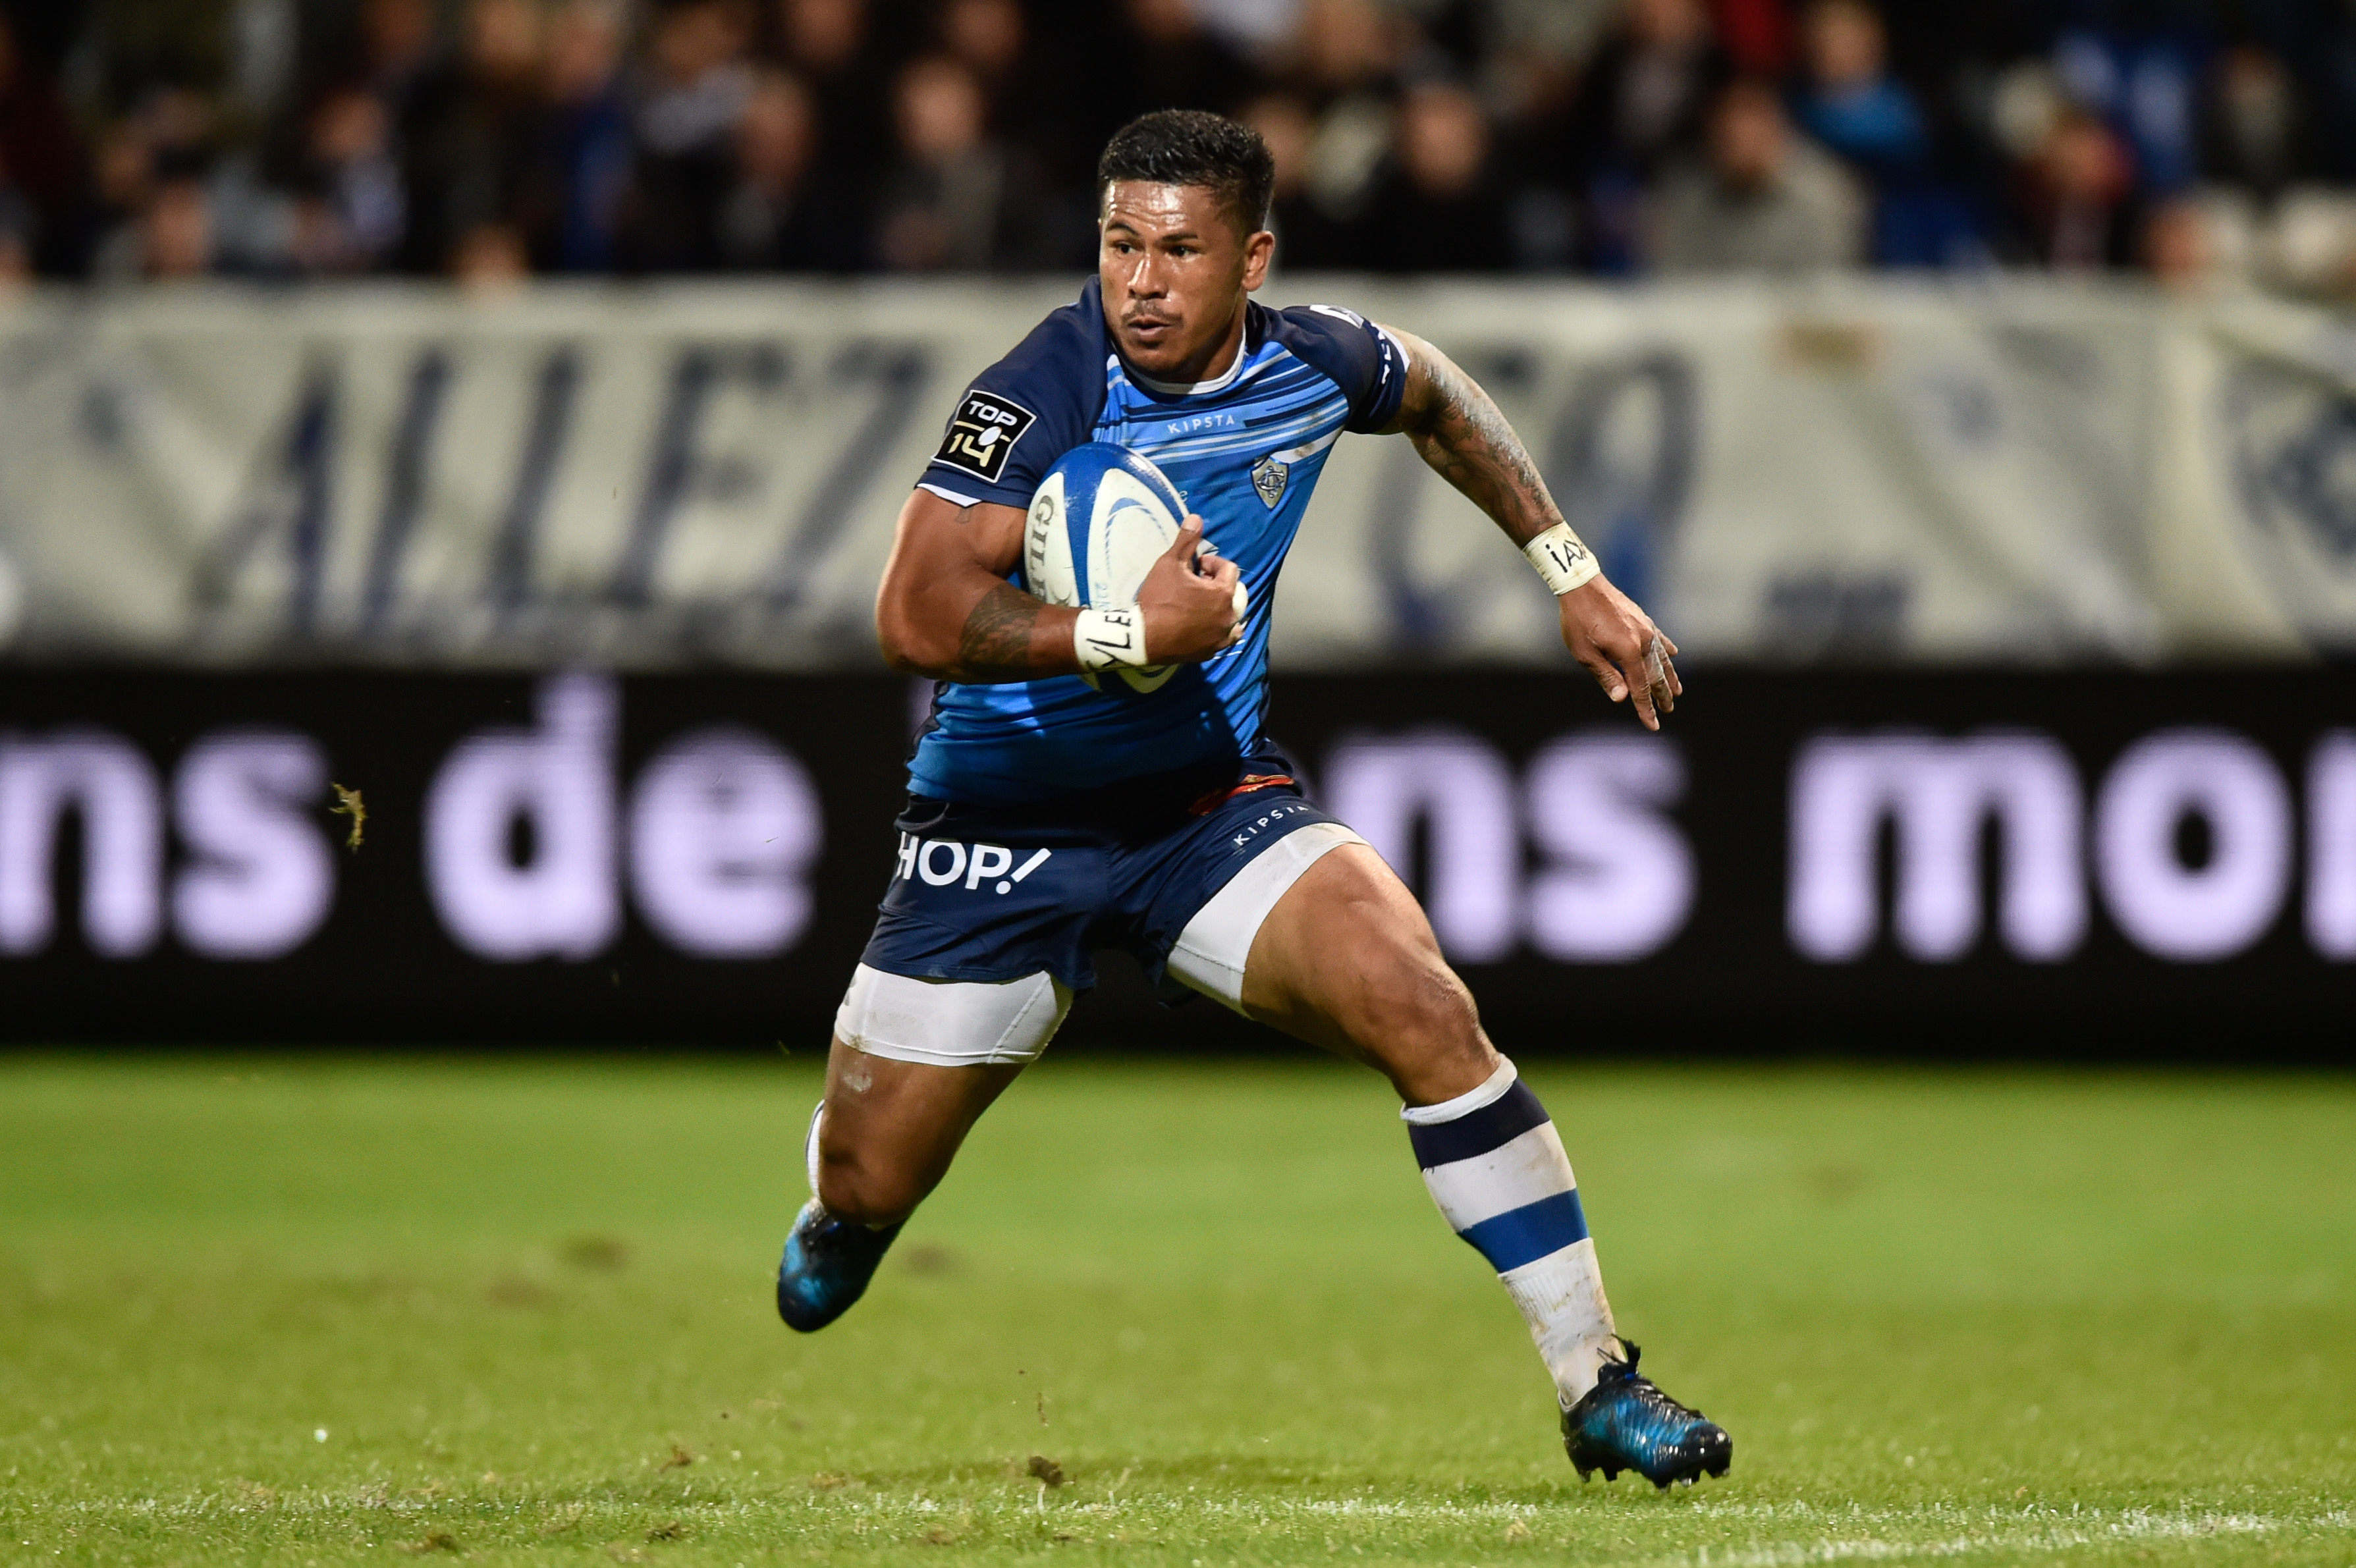 Rugby - Coupes d'Europe - Champions Cup : Leicester-Castres en direct